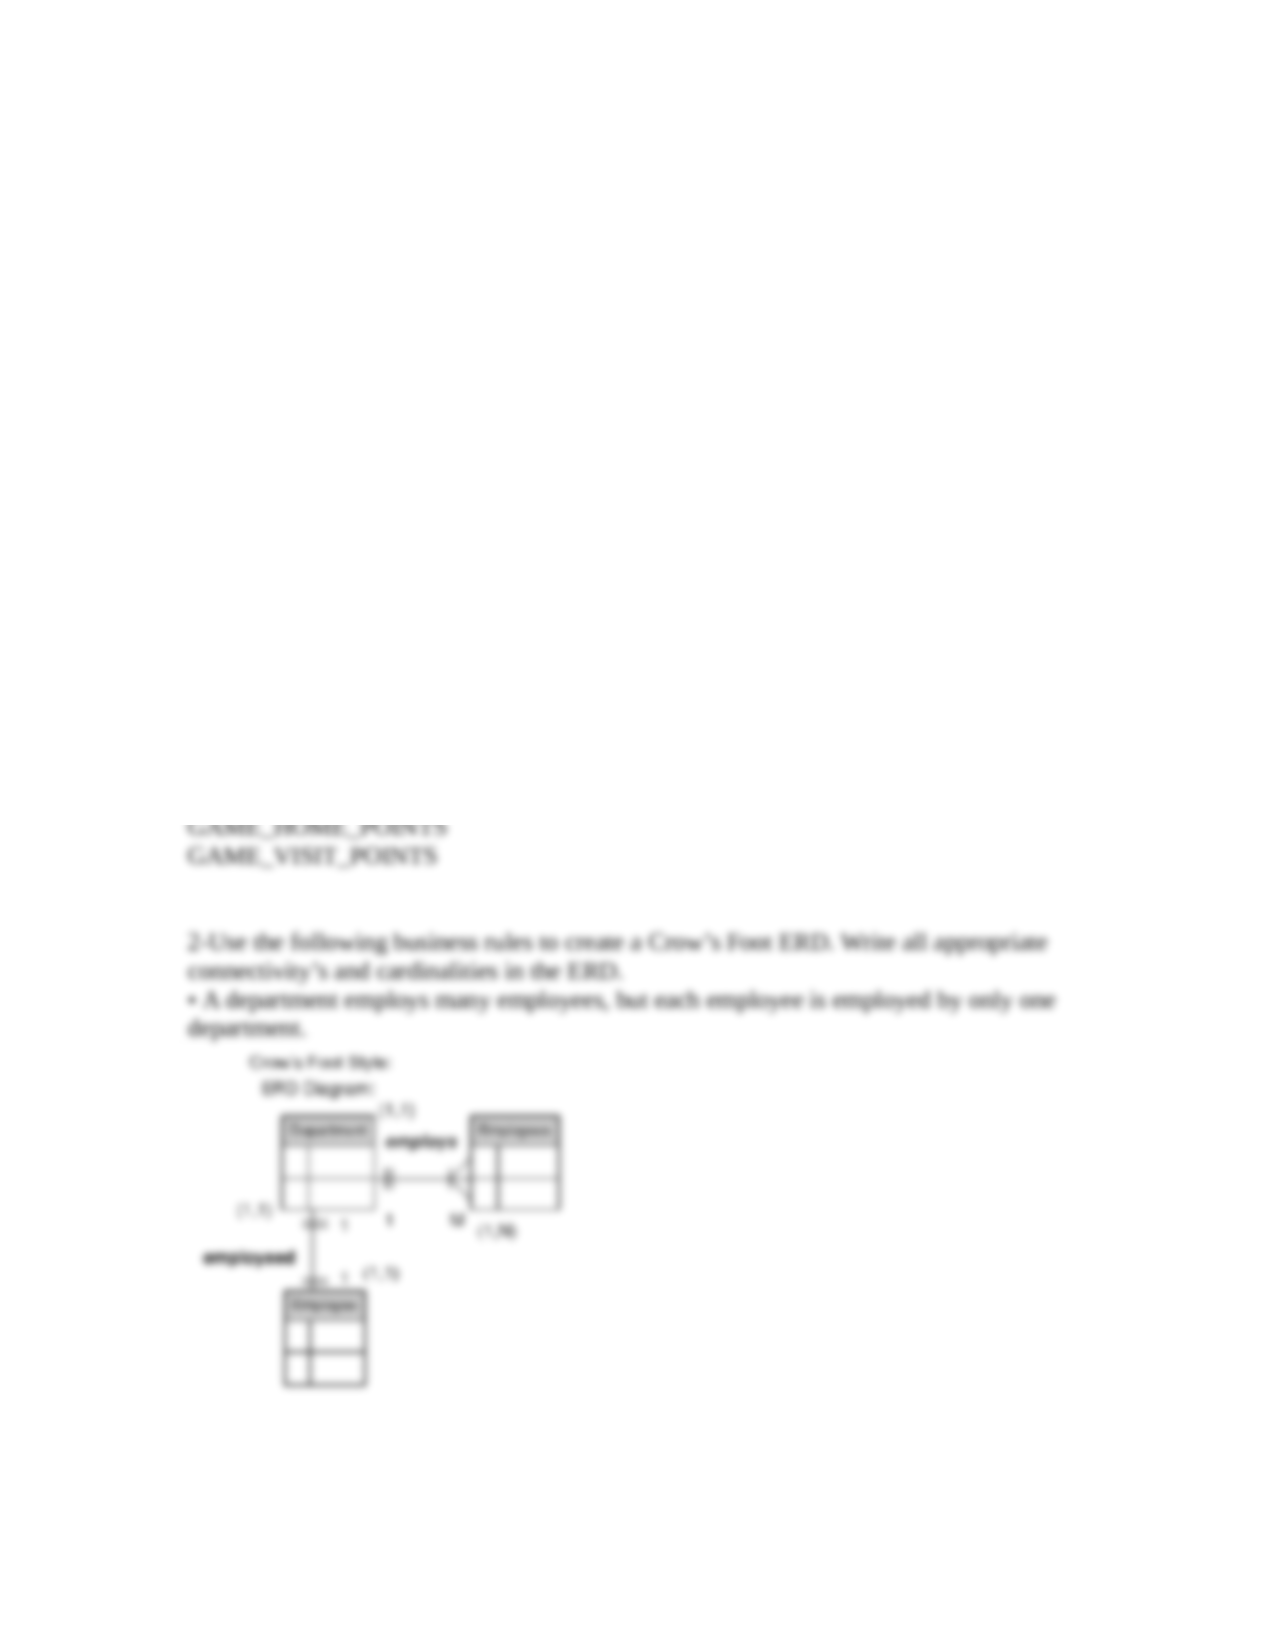 Write all appropriate connectivities and cardinalities in the erd